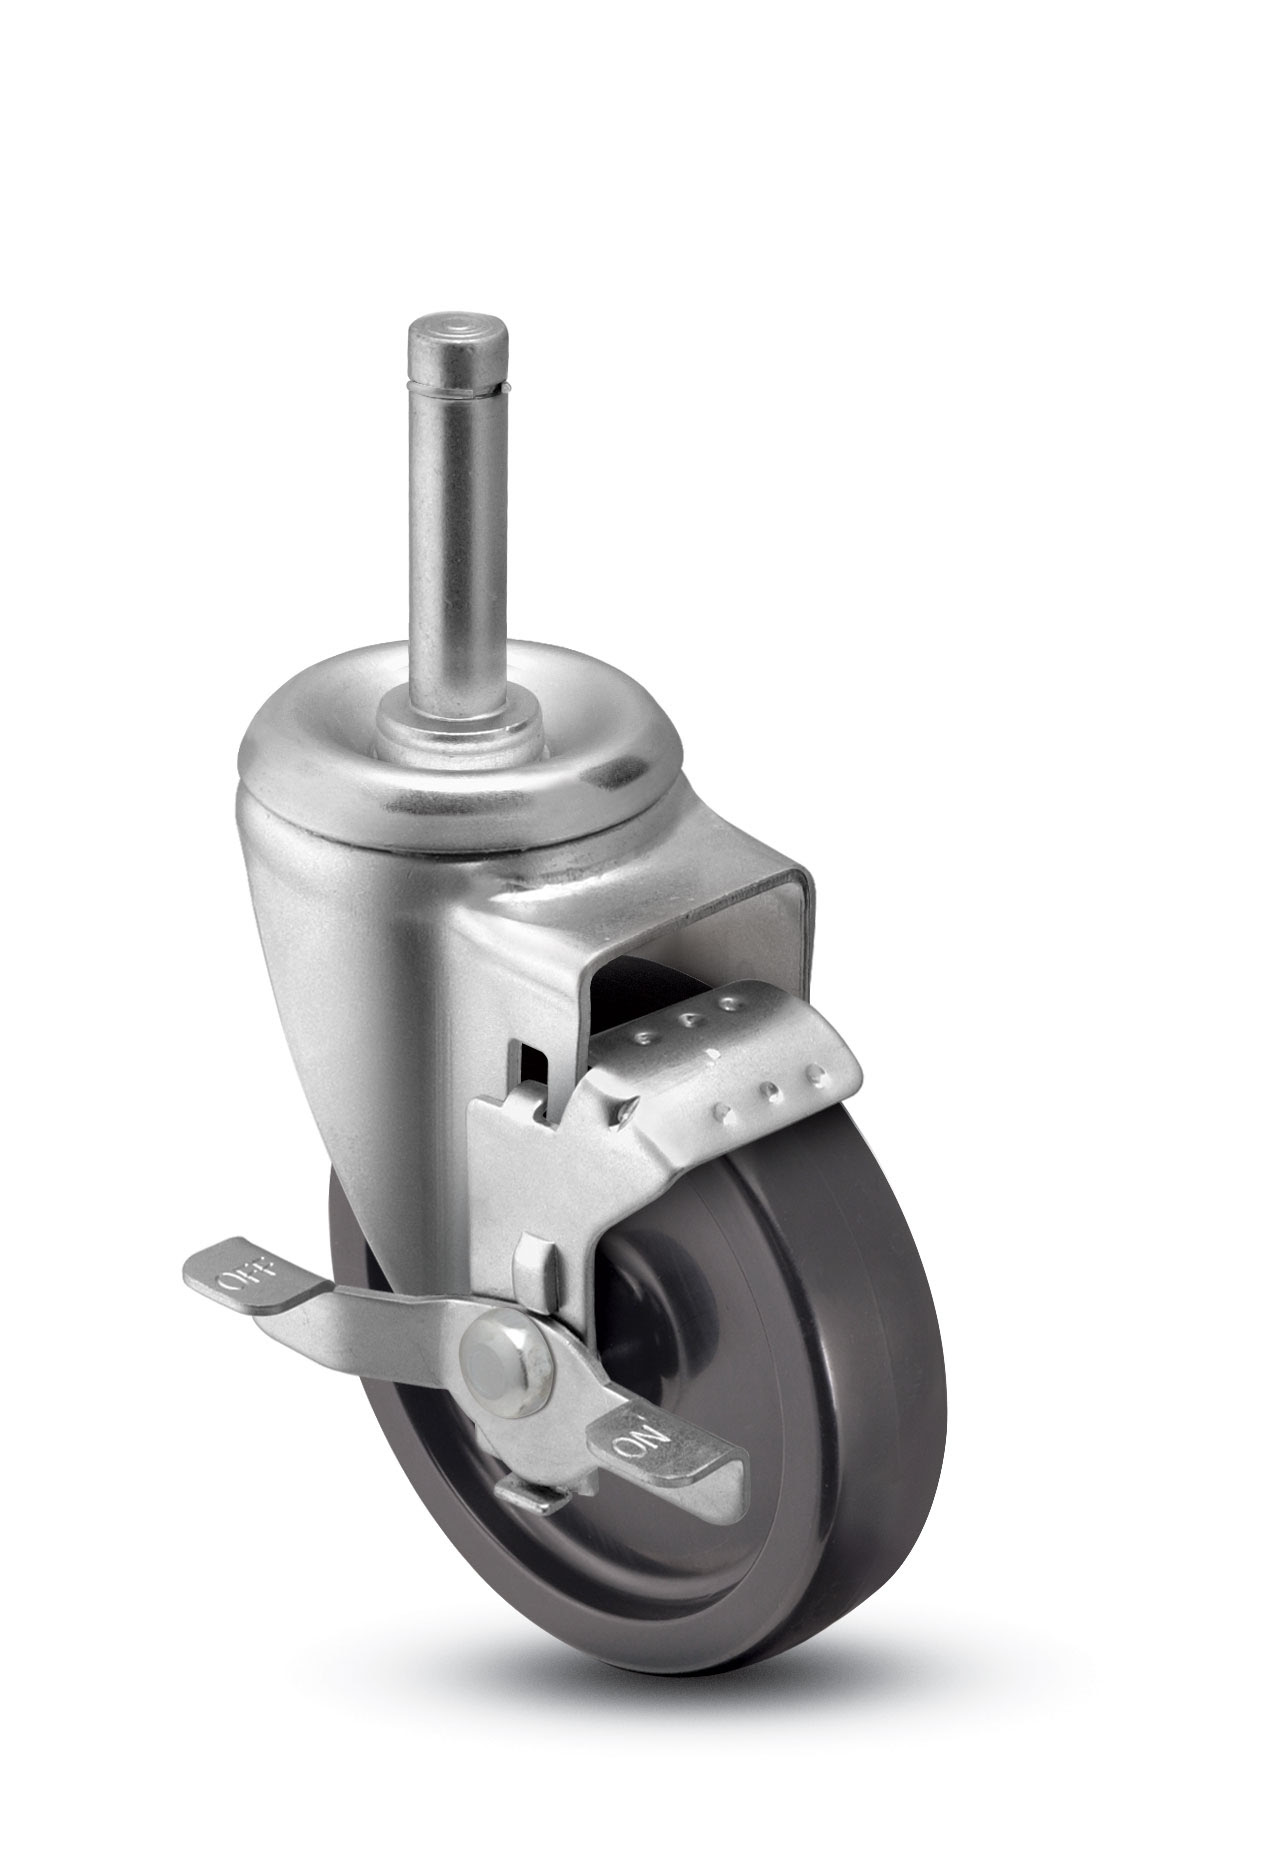 Apollo Caster Light Duty Casters Light Duty Casters